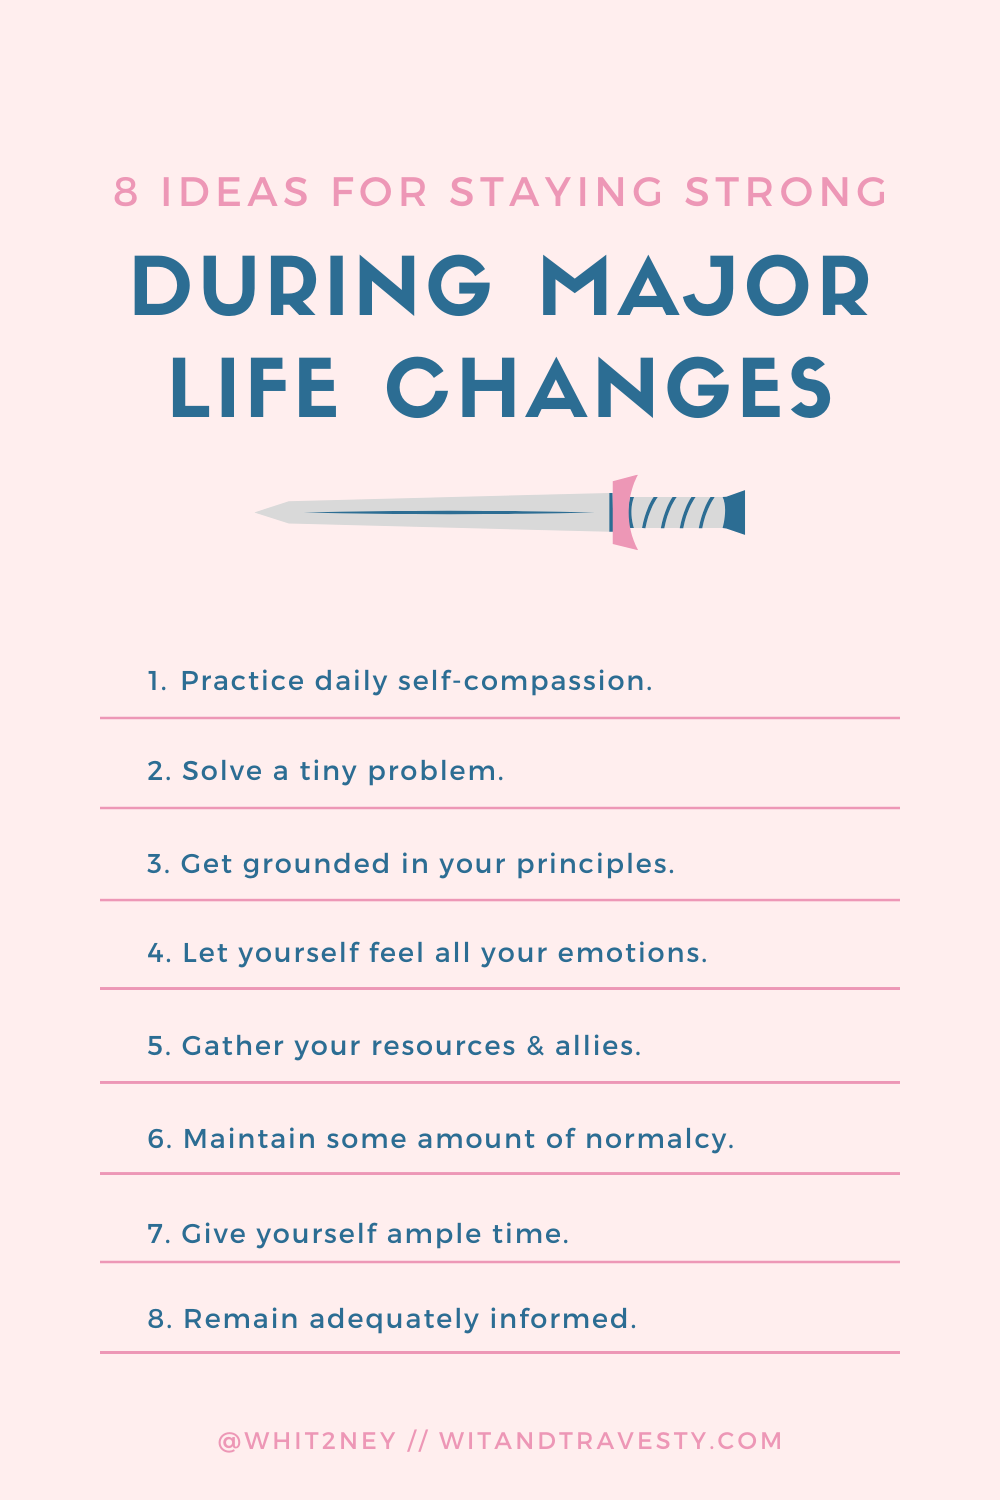 8 Ideas for Staying Strong During Major Life Changes